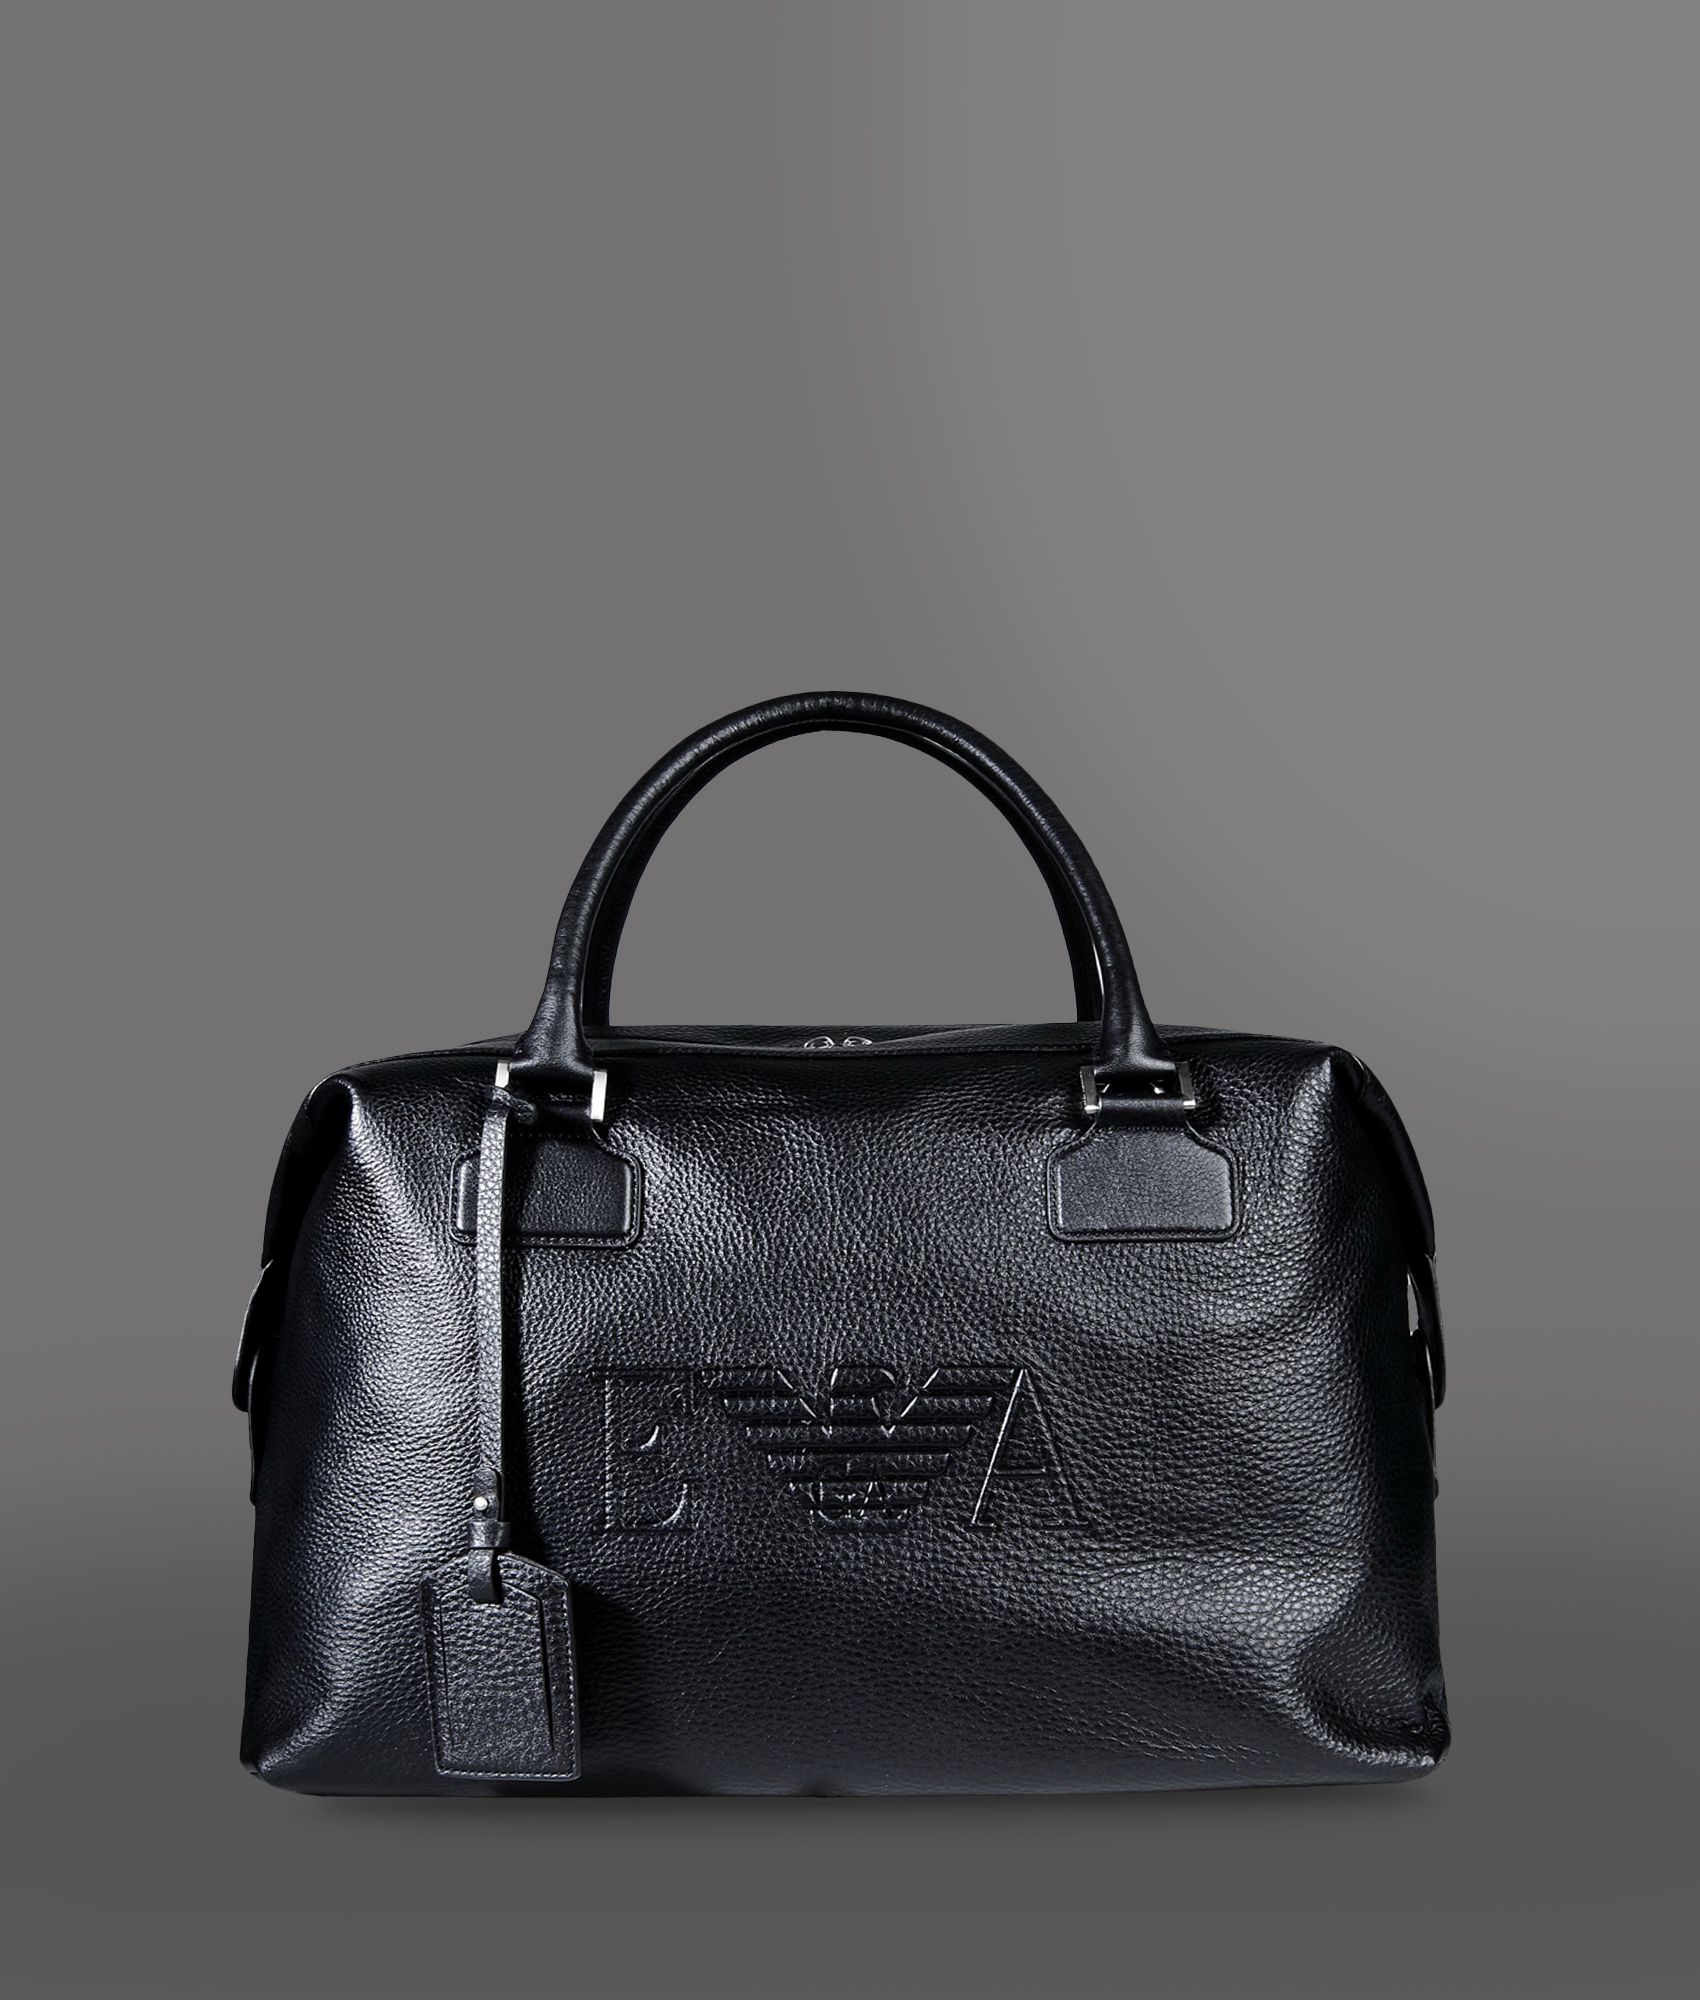 Lyst - Emporio Armani Travel Bag in Black for Men c3cec00ed3829